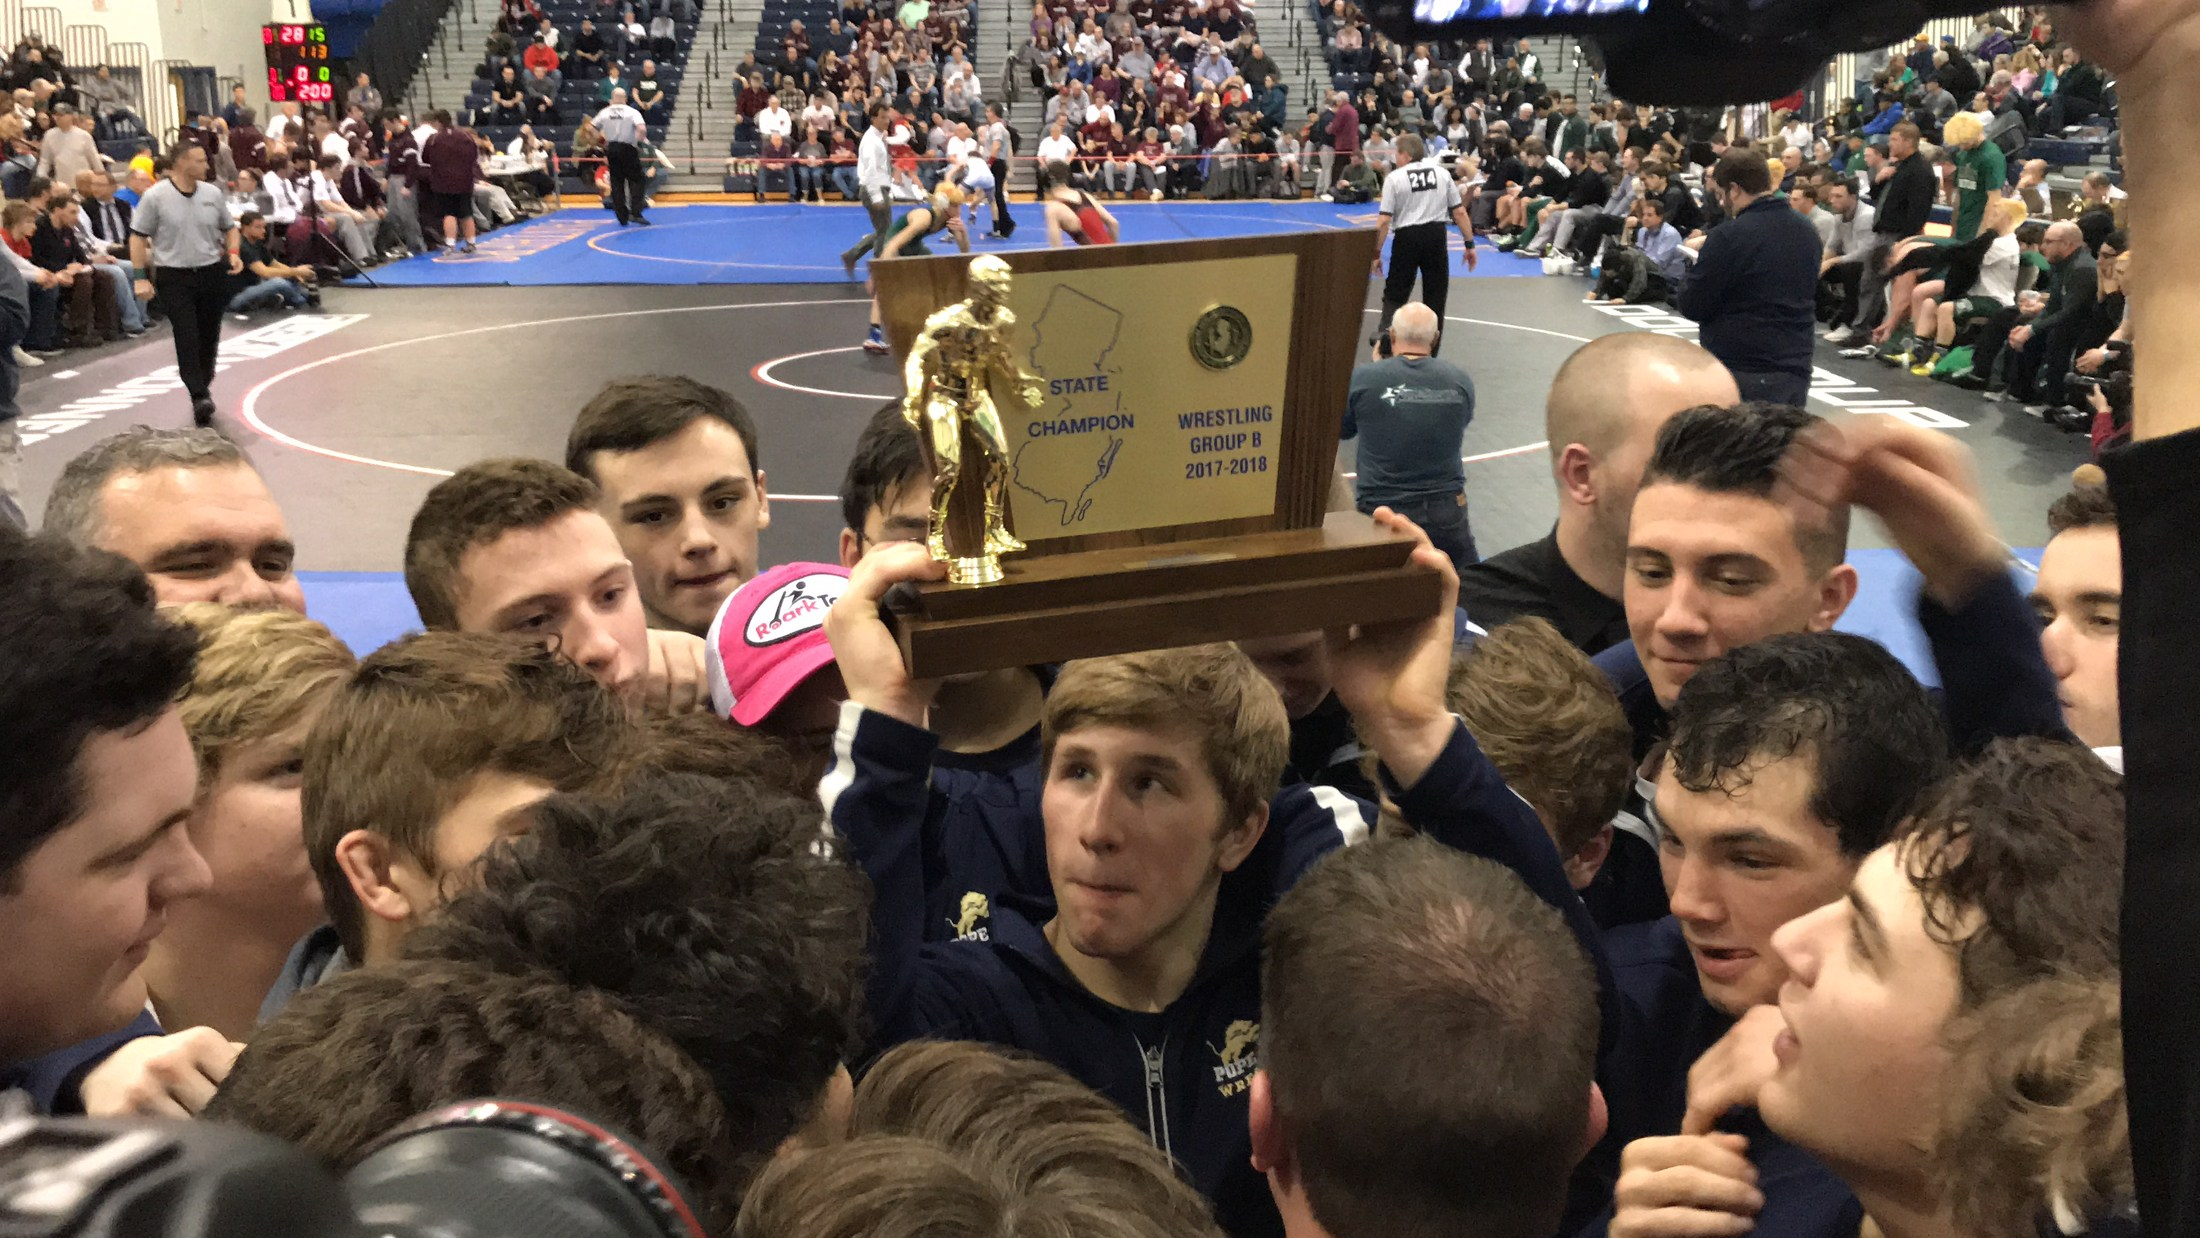 PJ Wrestling state champs 2